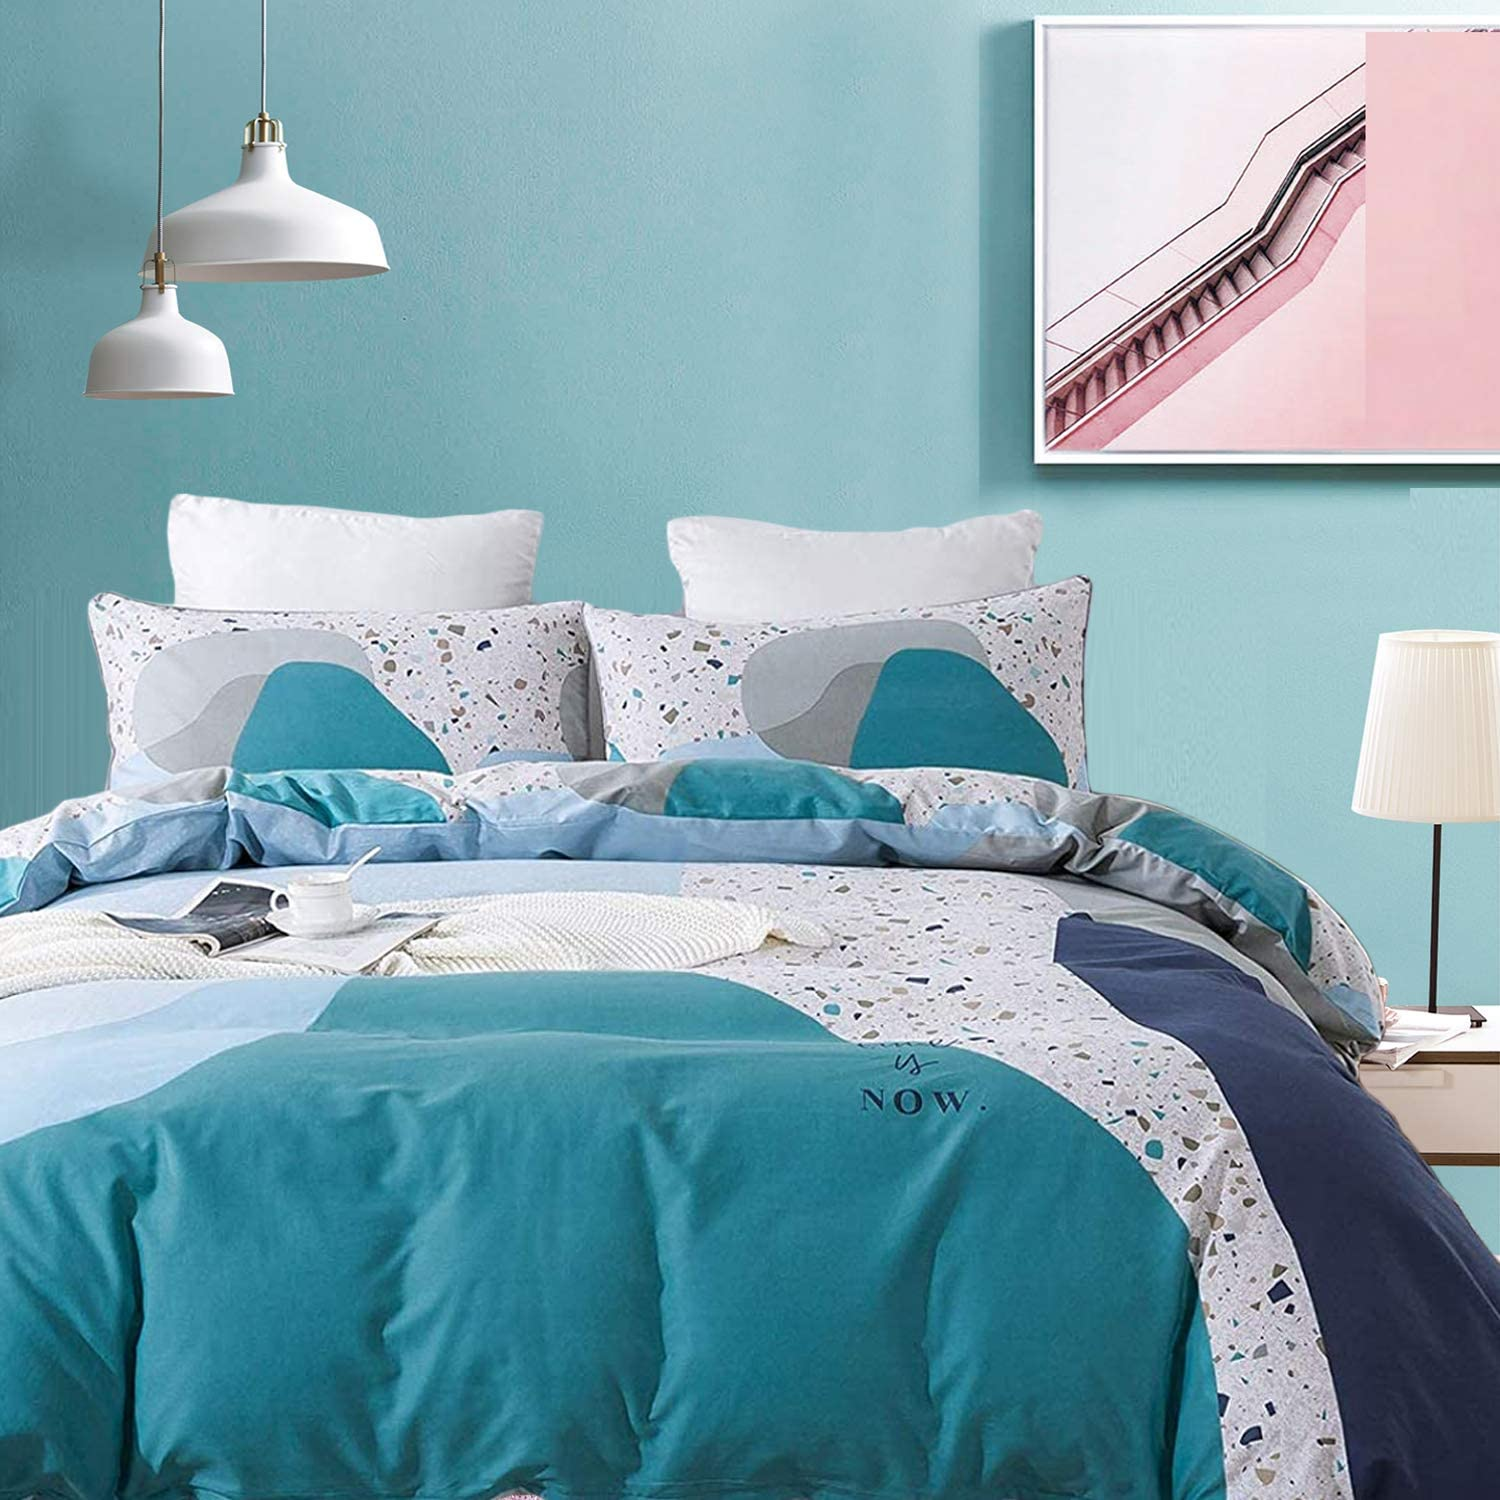 Max 82% OFF safety FADFAY Cotton Duvet Cover Queen Zipper Beddi Turquoise Size Blue